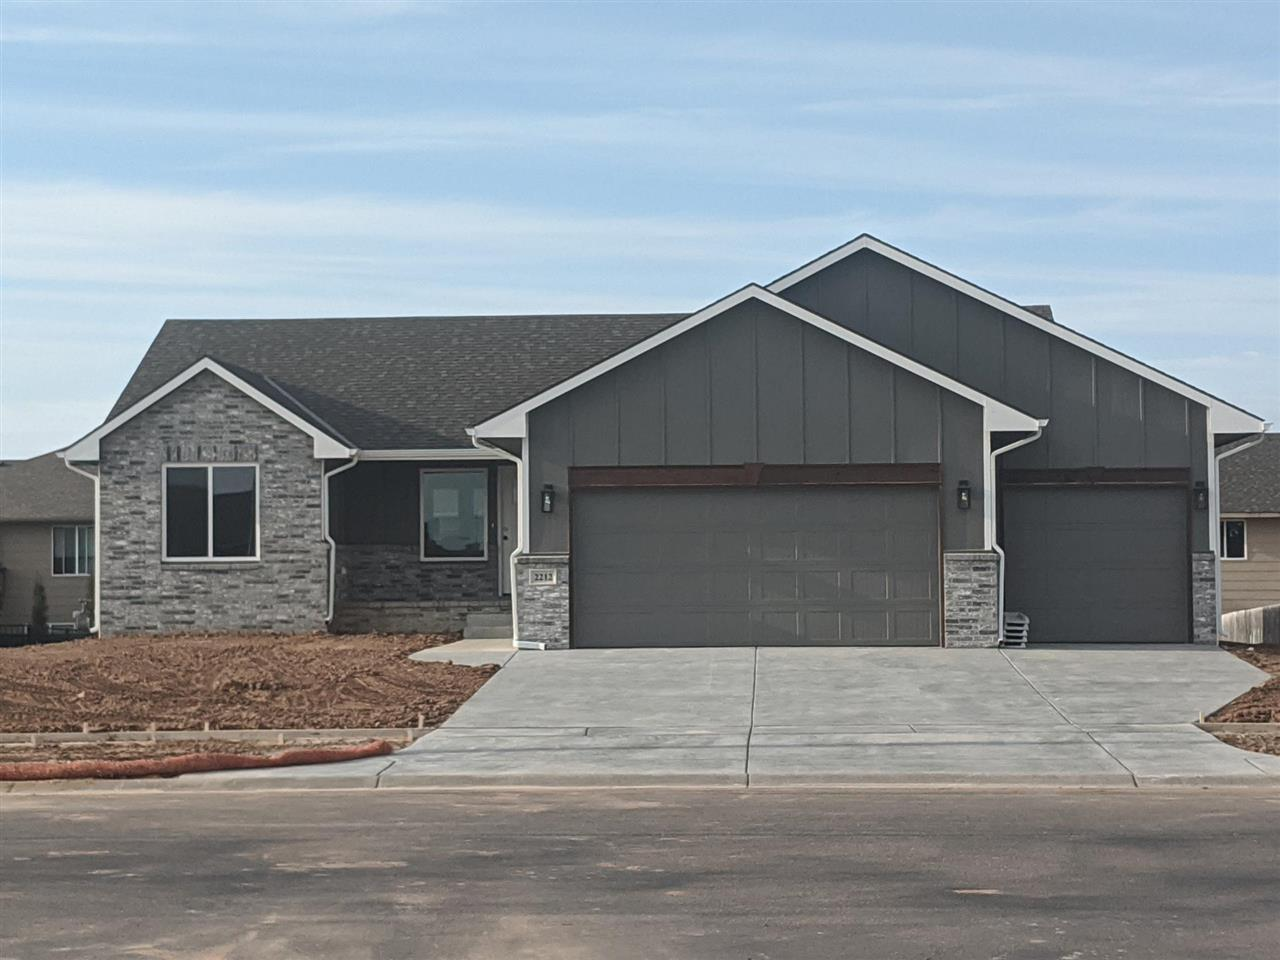 Future Winter Plan.  Visit the Winter Model home at 924 Oak Ridge Ave to see the Floor plan :)